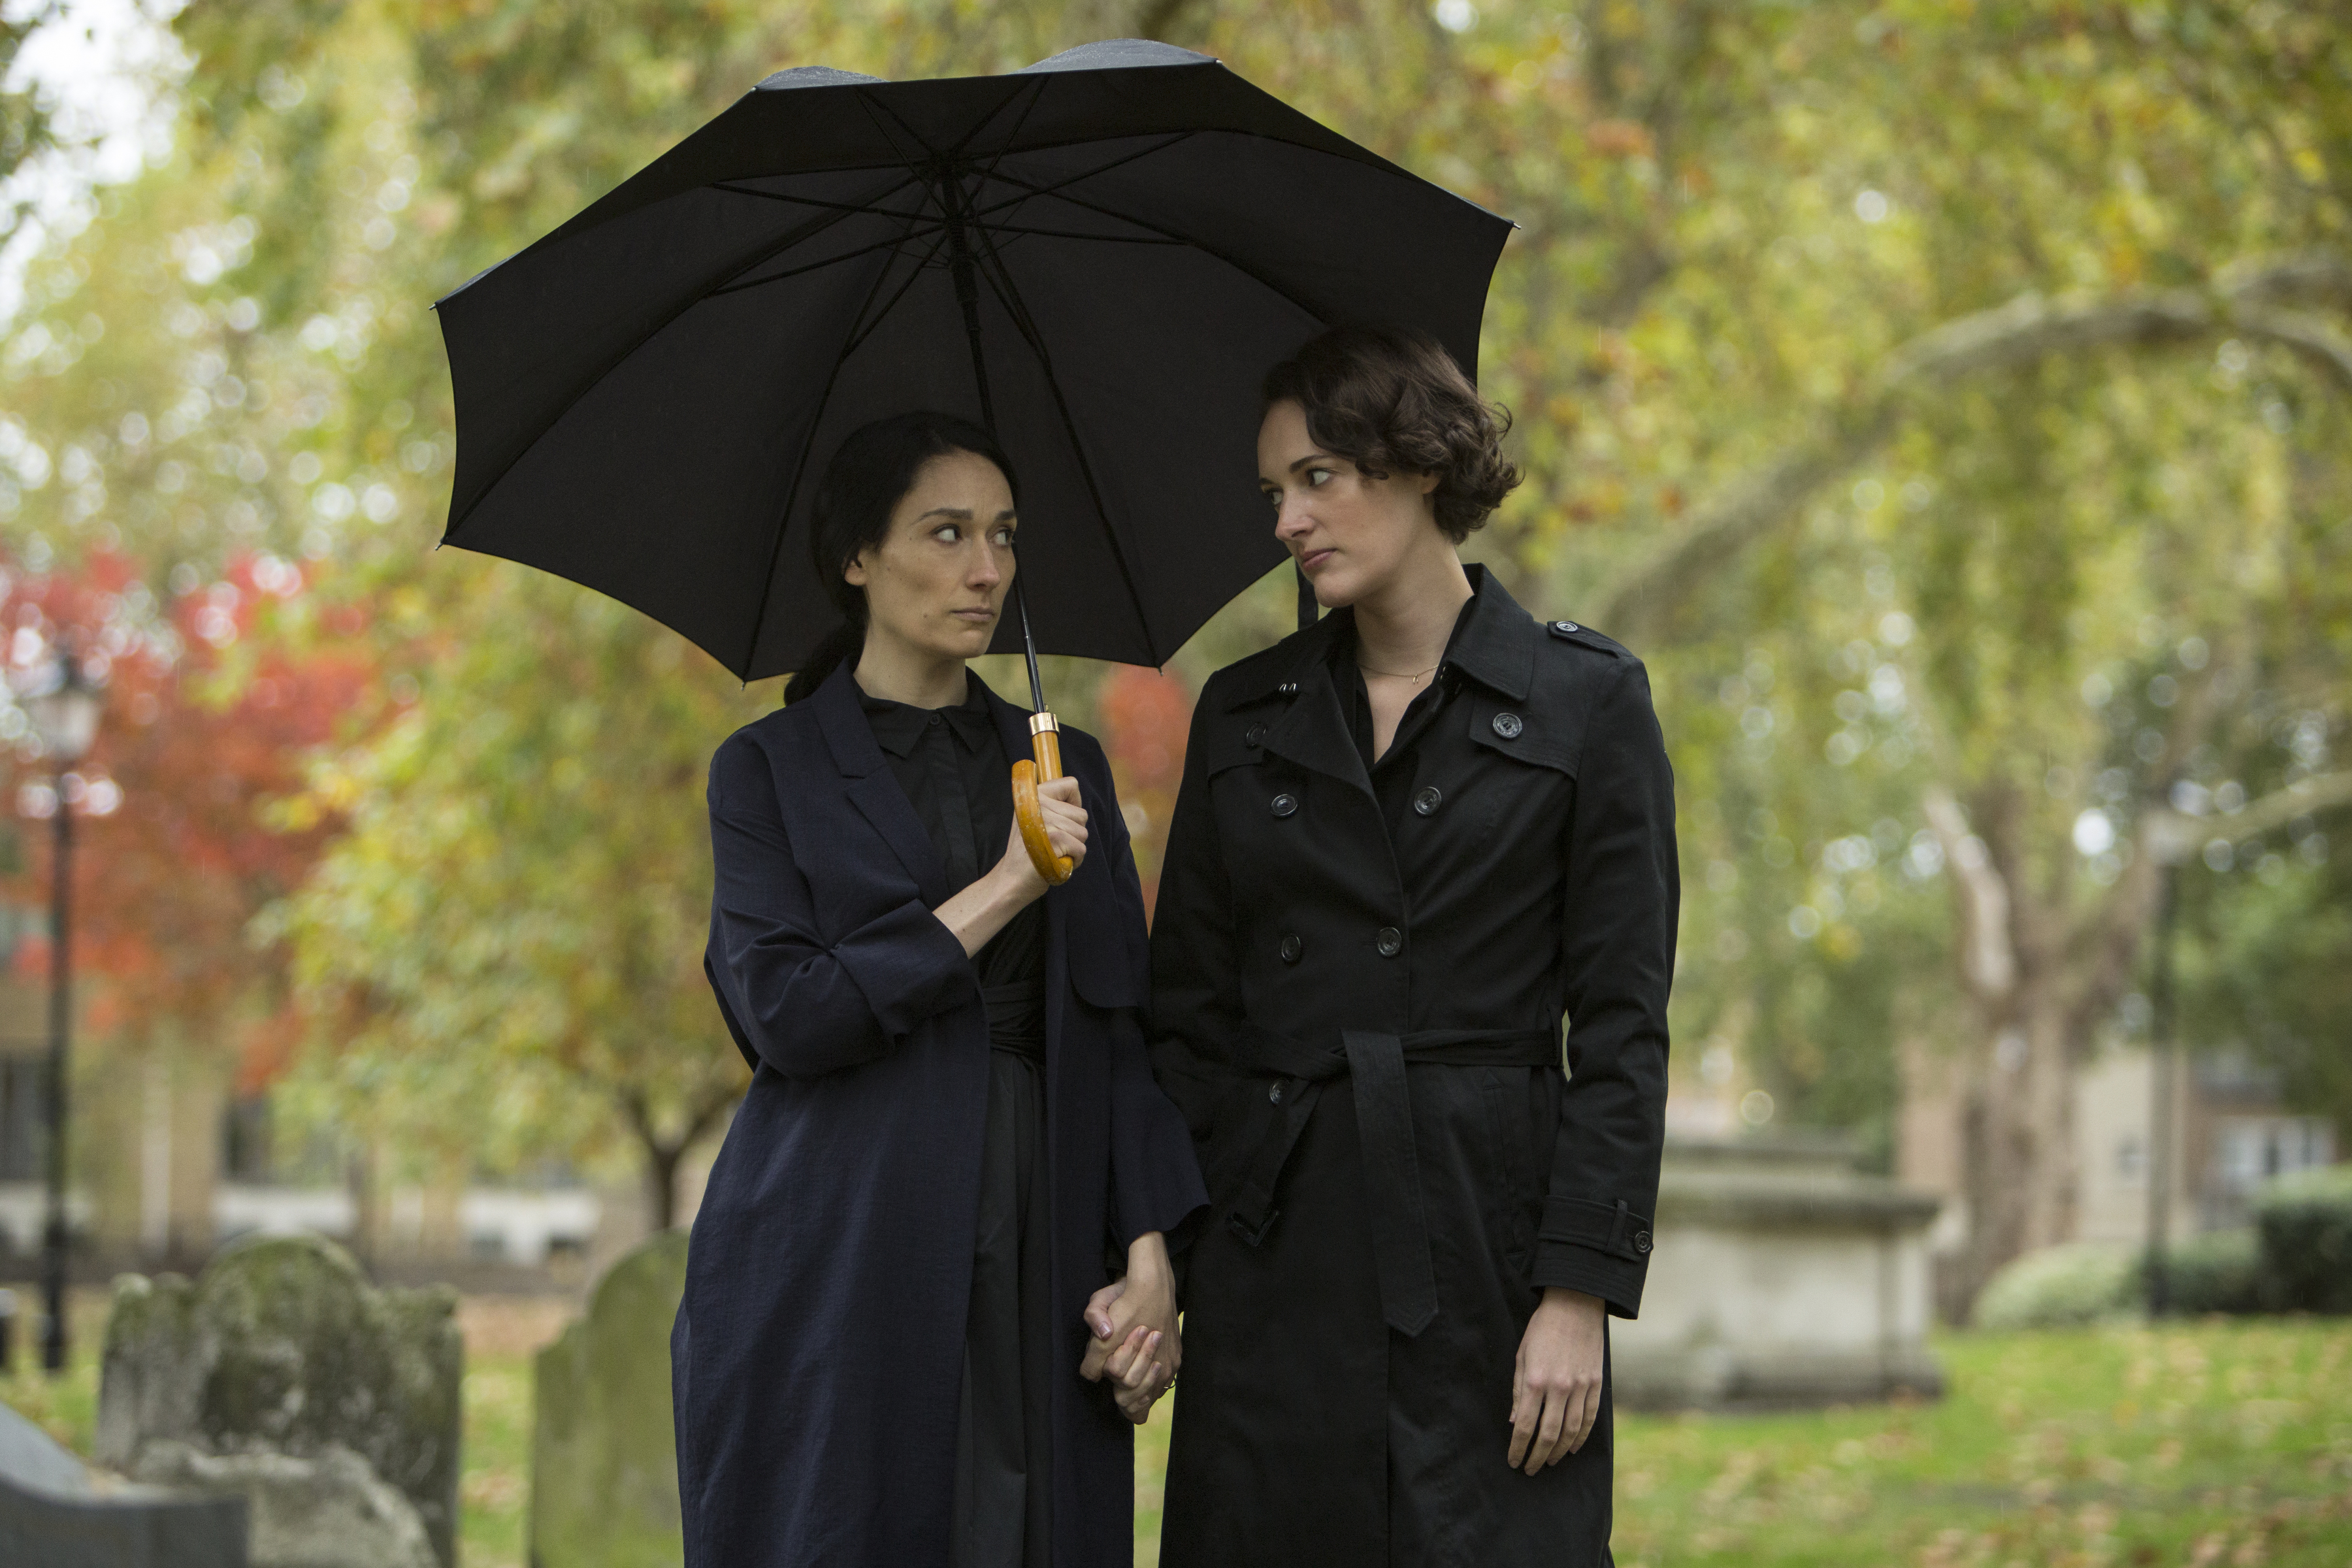 Interview with Sian Clifford from Fleabag